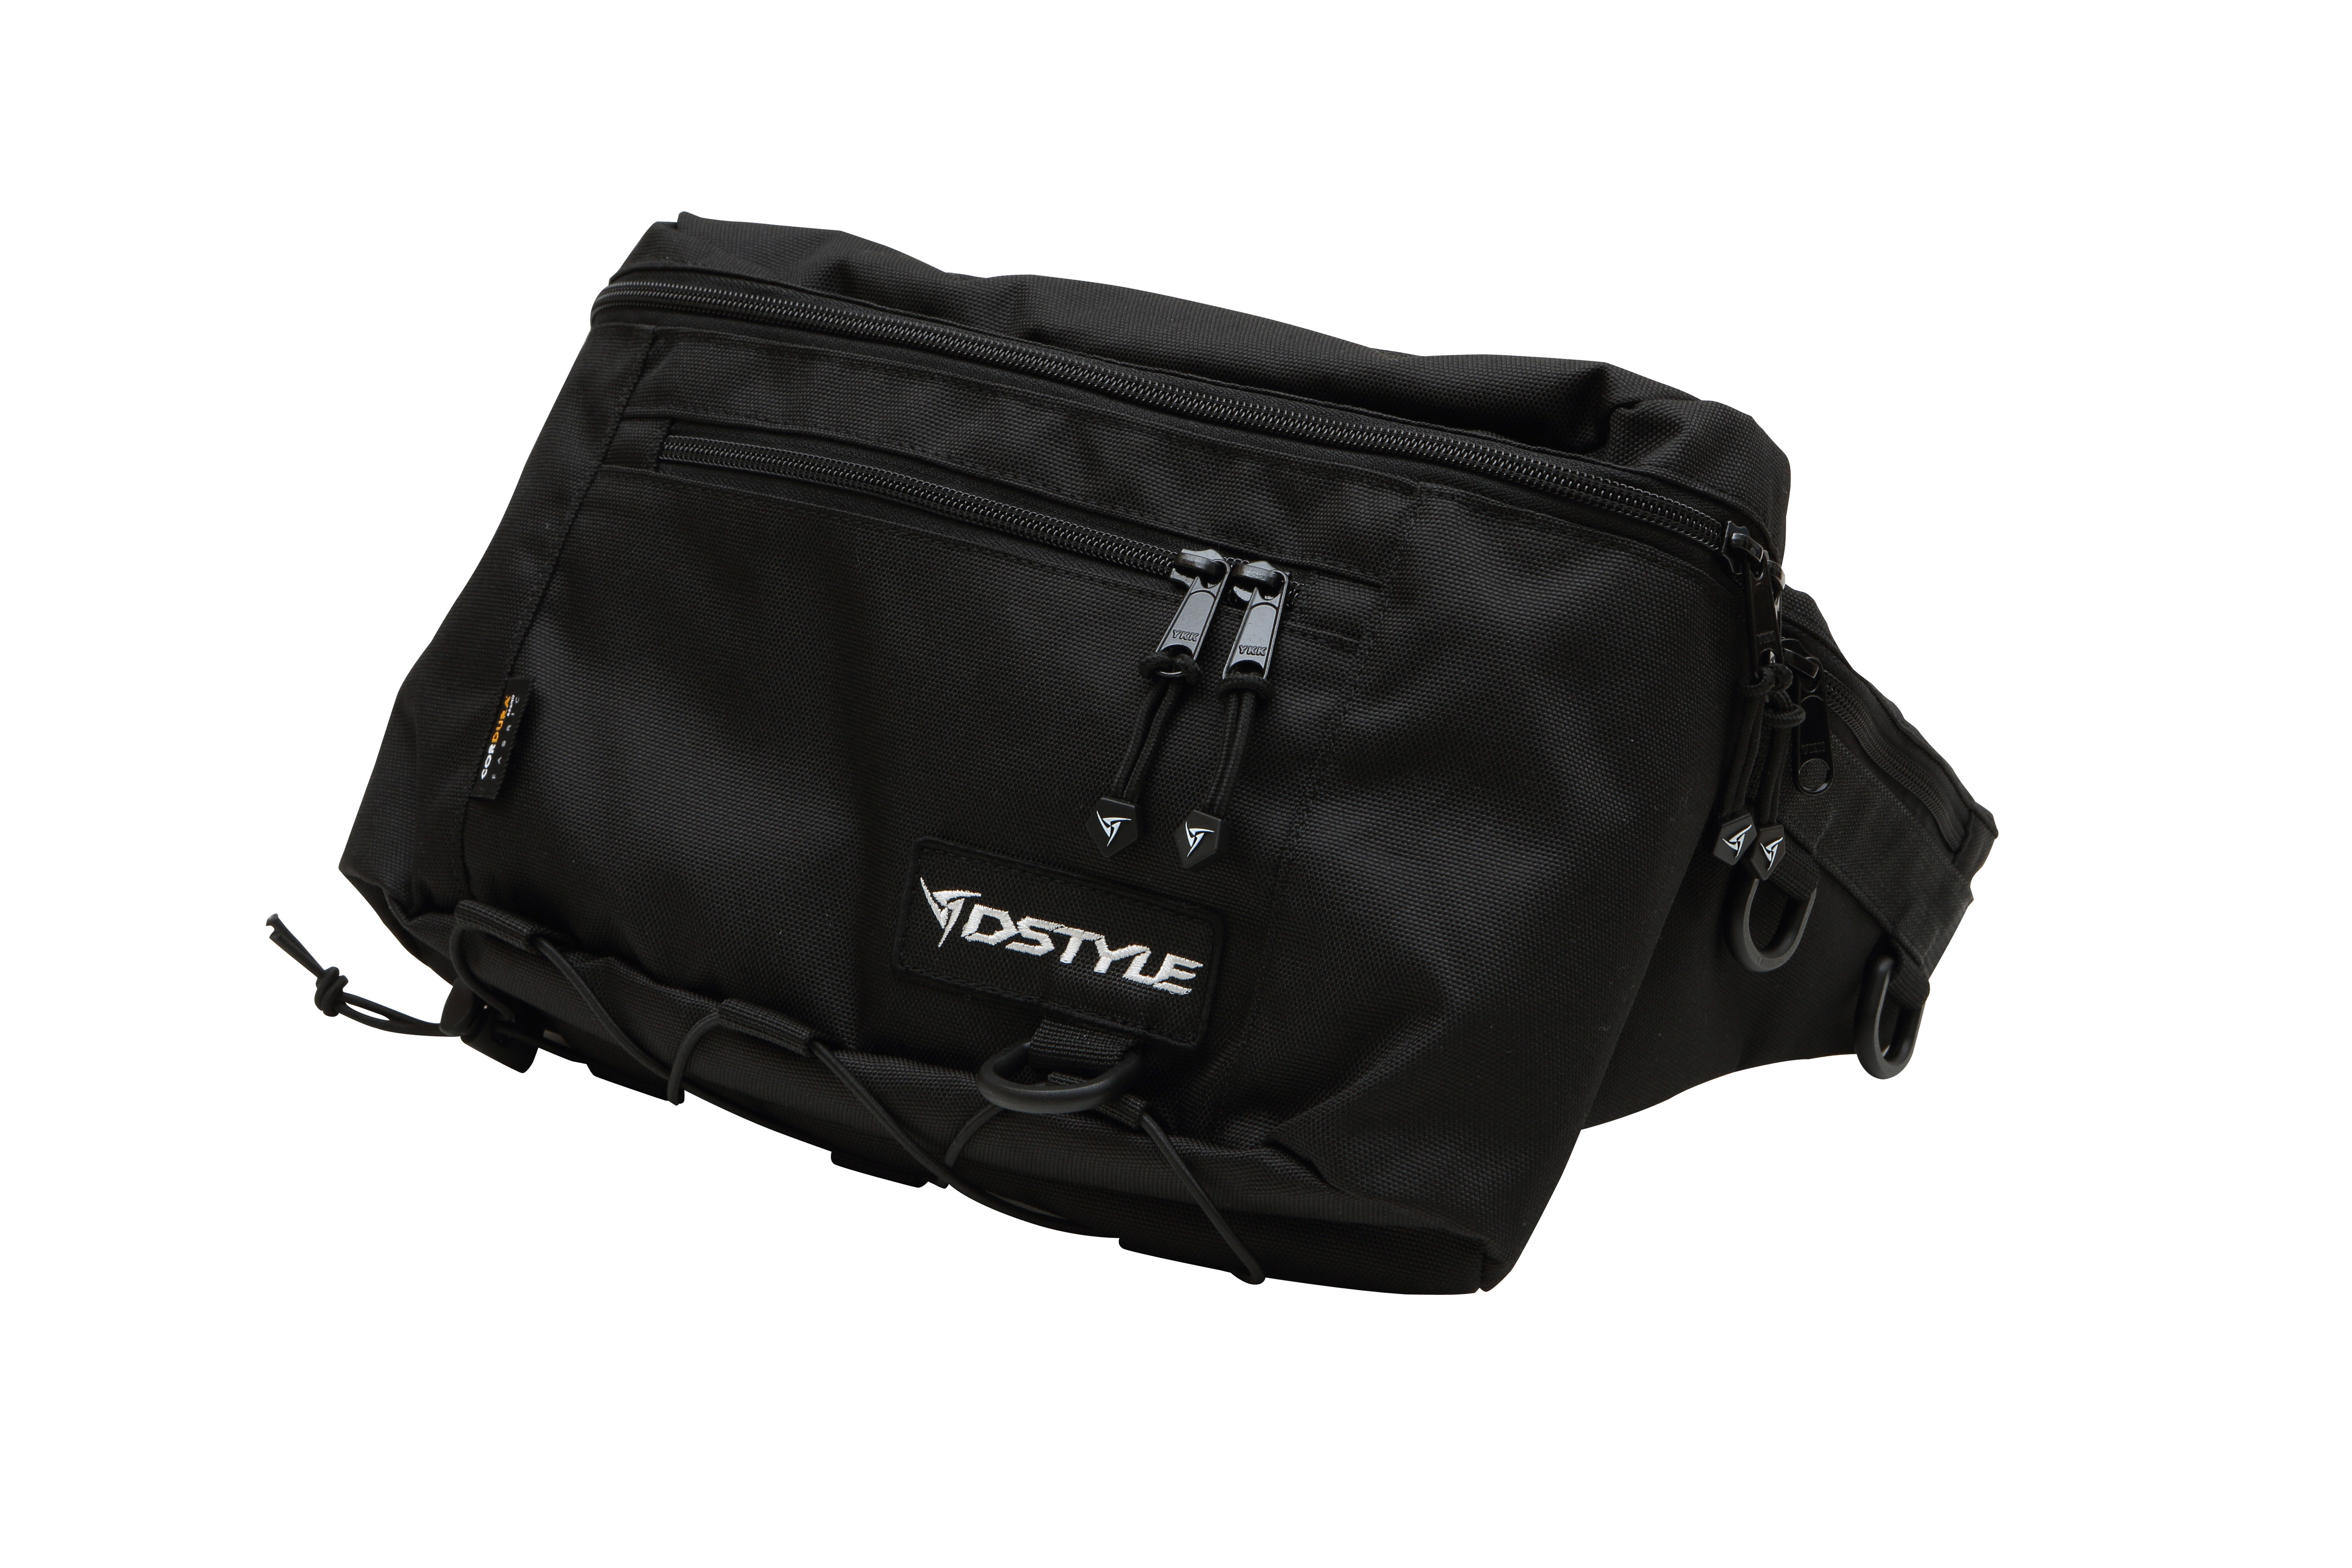 DSTYLE Sling Tackle Bag ver001